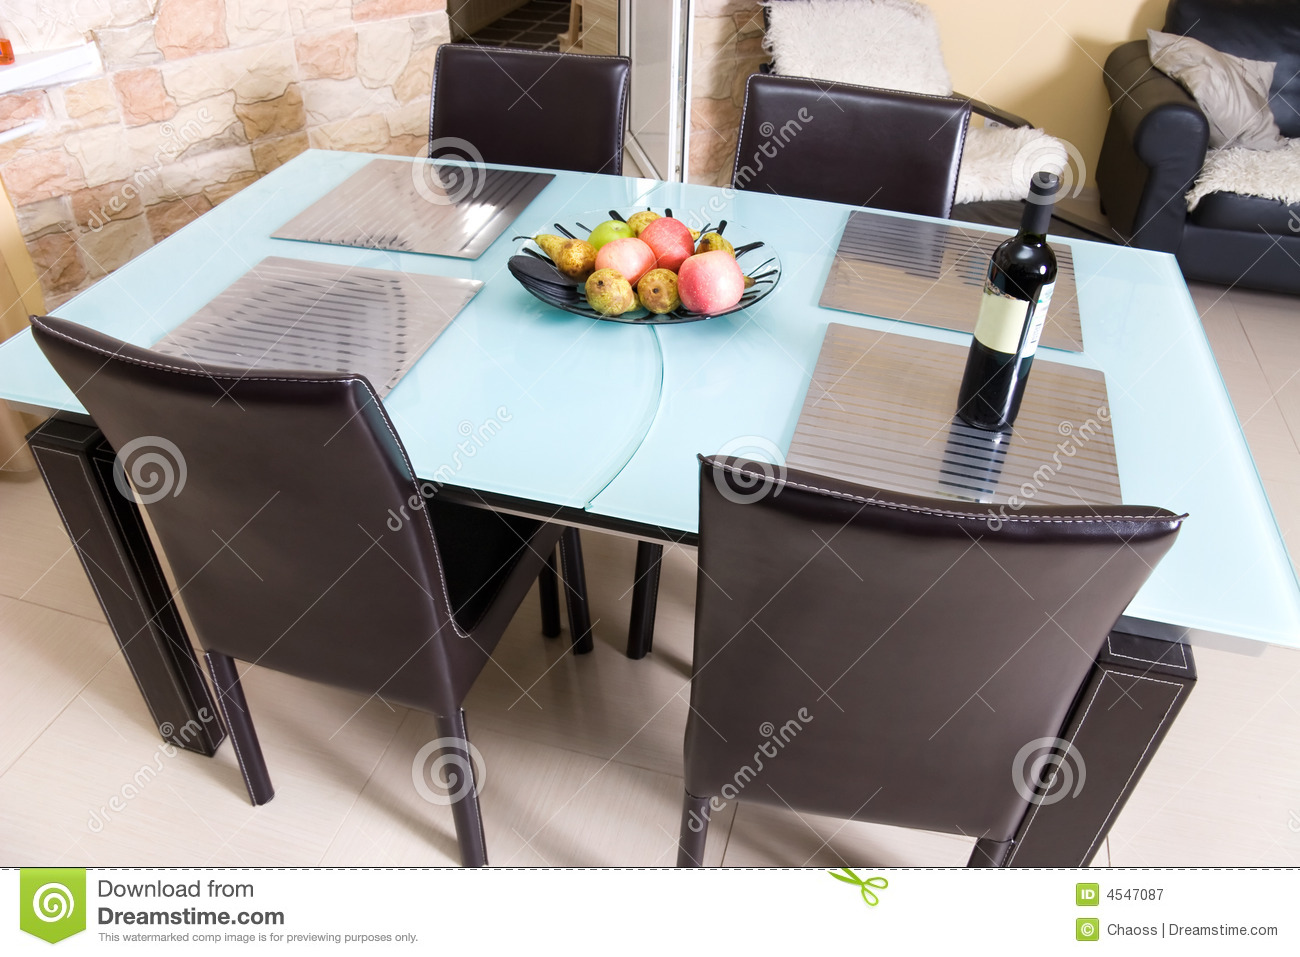 table de cuisine moderne avec des fruits un vin. Black Bedroom Furniture Sets. Home Design Ideas